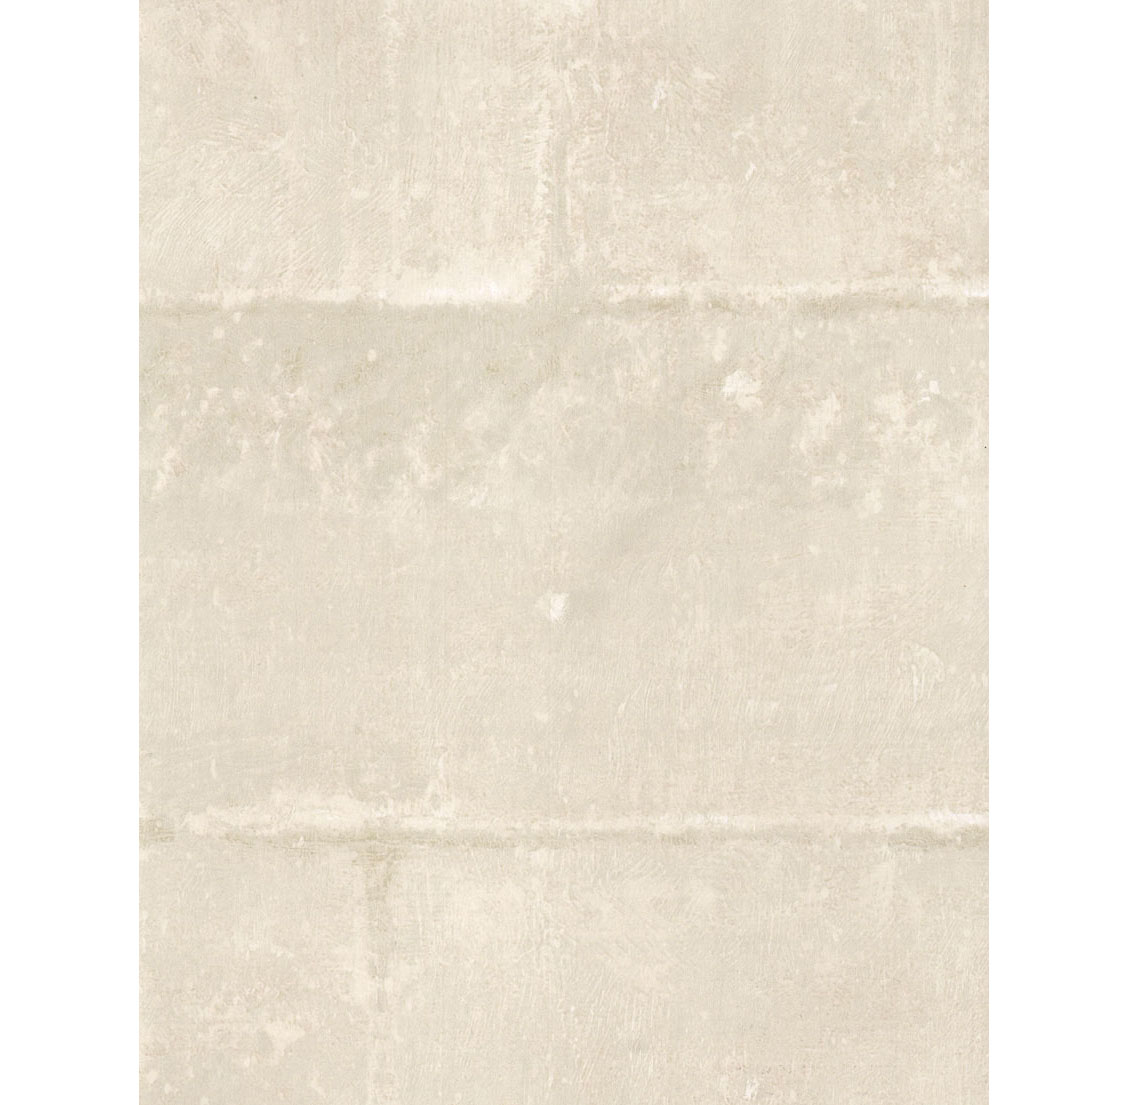 Industrial Factory Sand Blasted Wallpaper - Stone